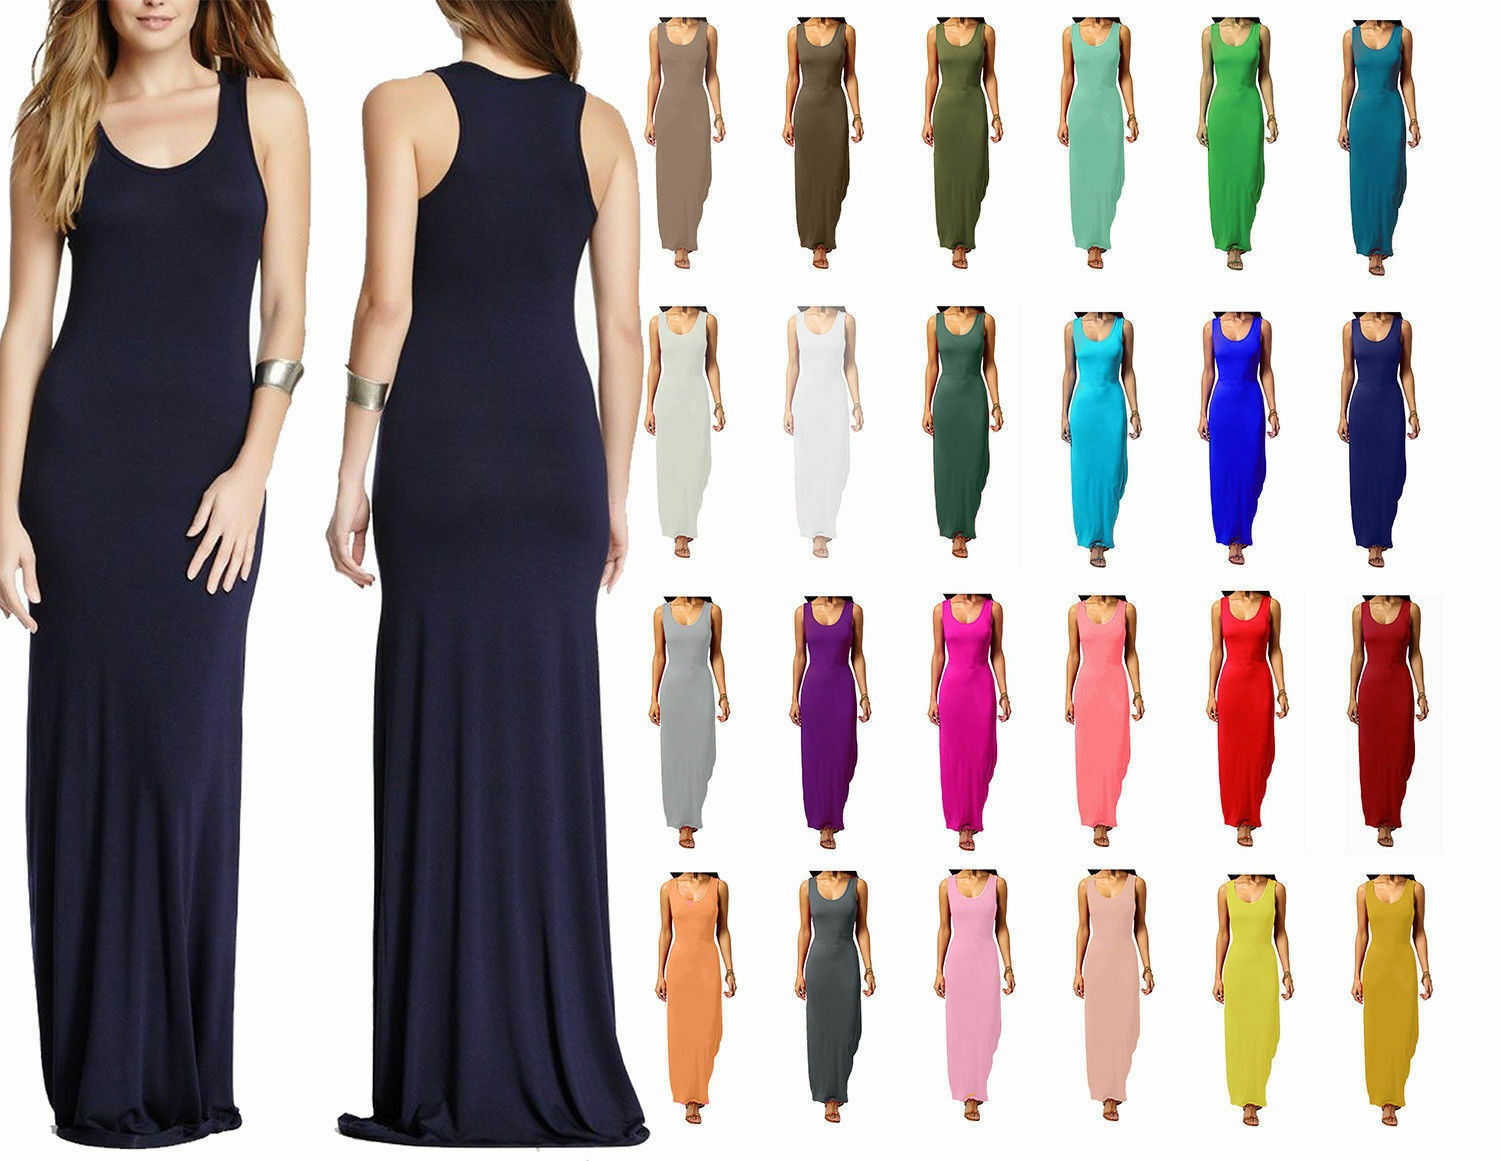 Women Sleeveless Muscle Racer Jersey Top Ladies Printed Back Fit Long Maxi Dress